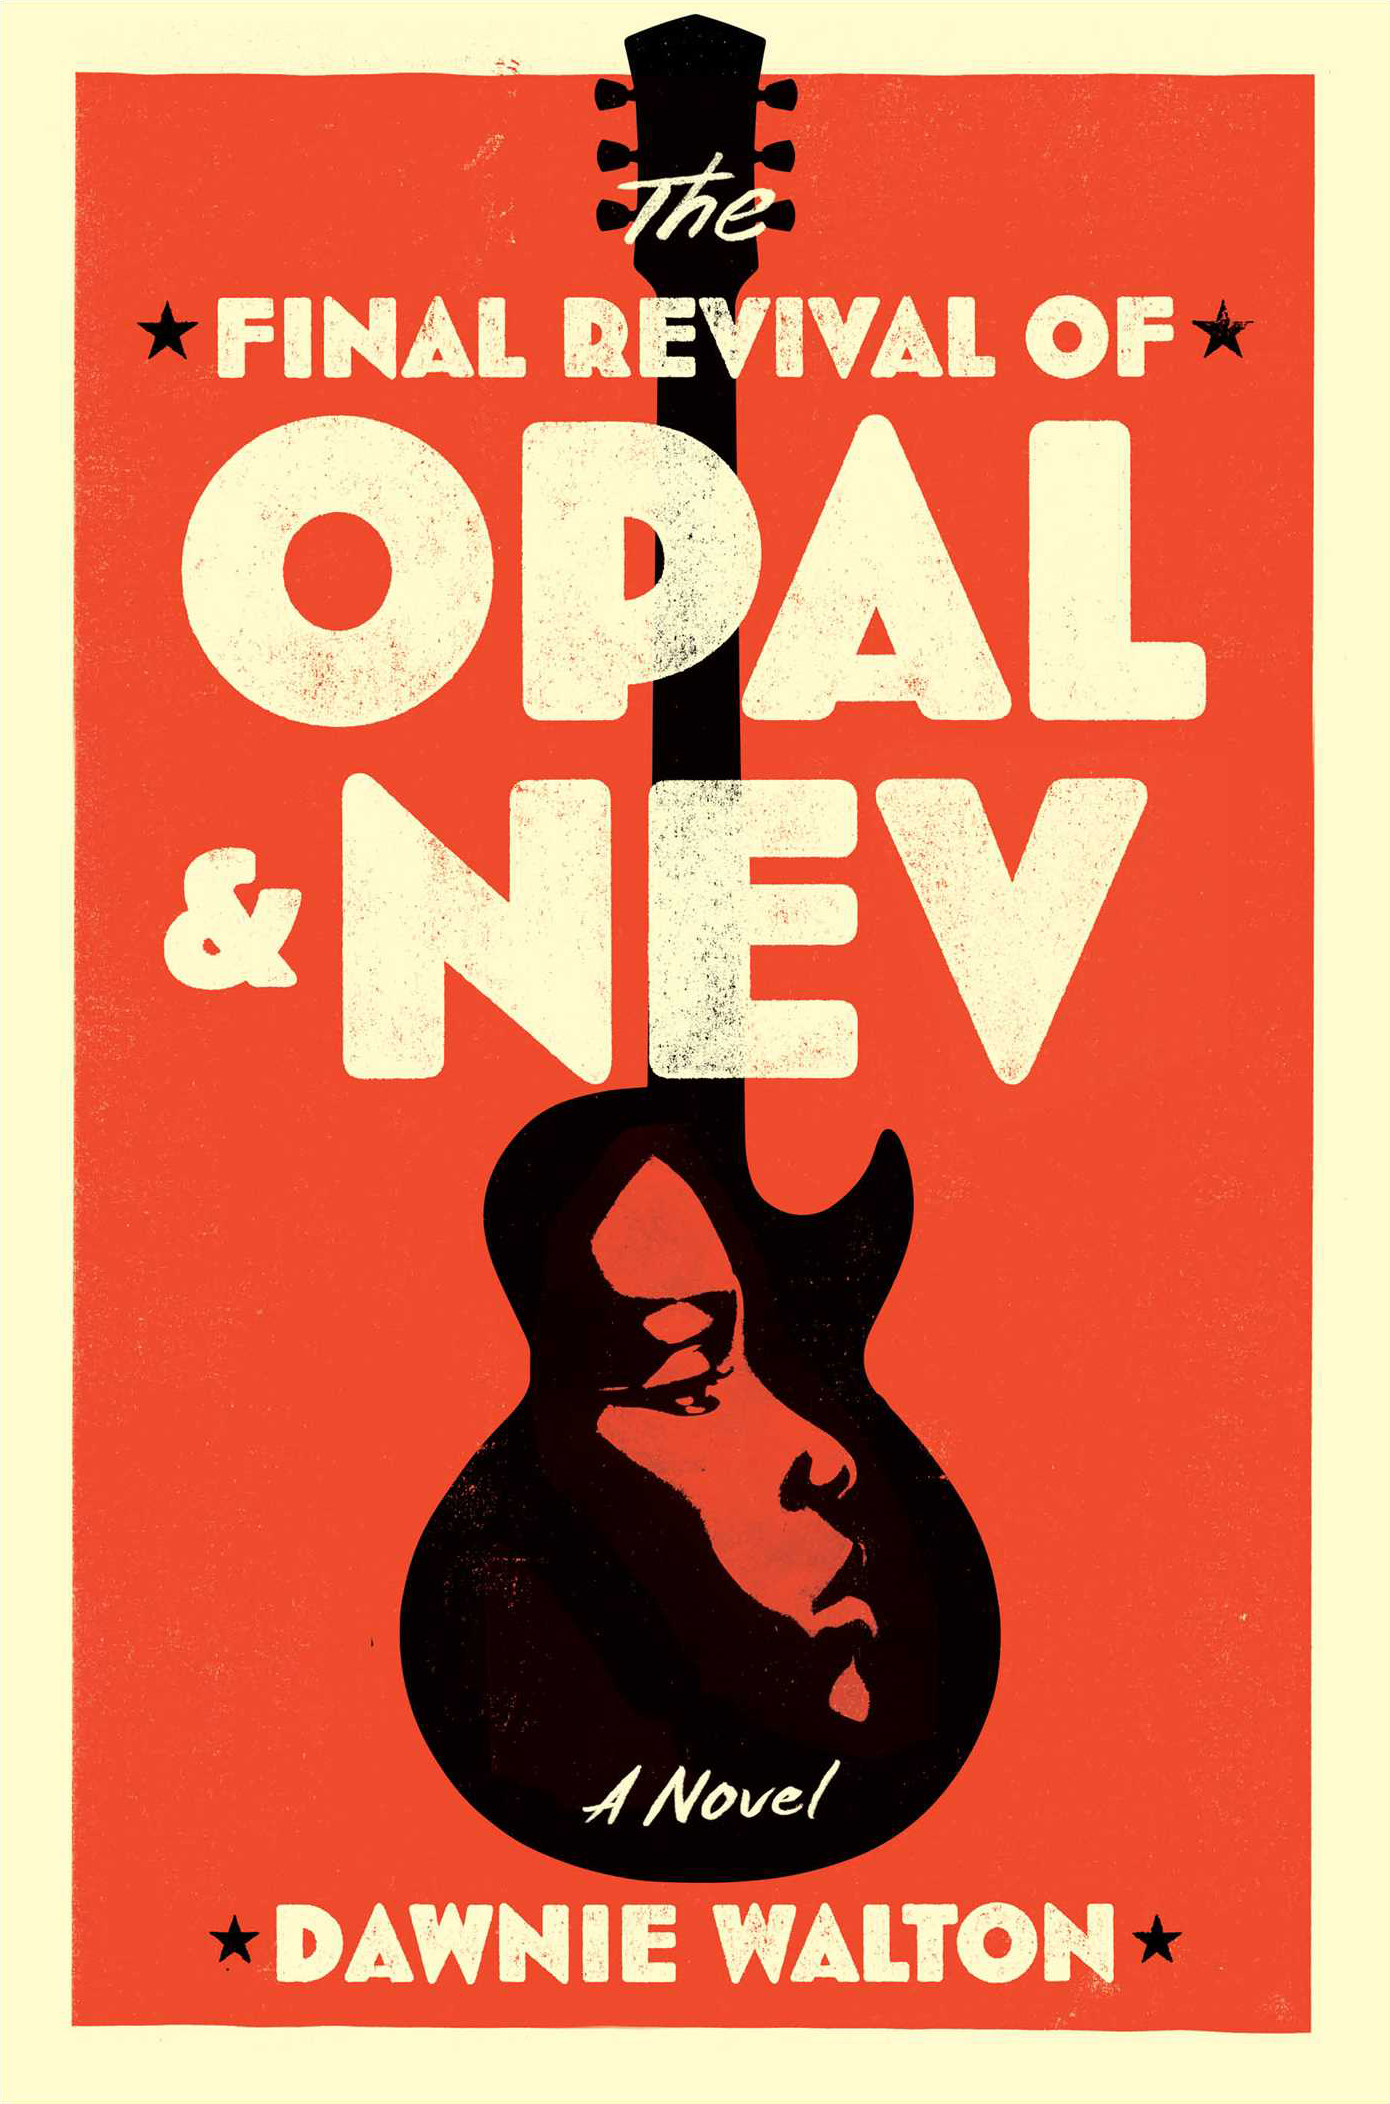 The Final Revival of Opal & Nev book cover.